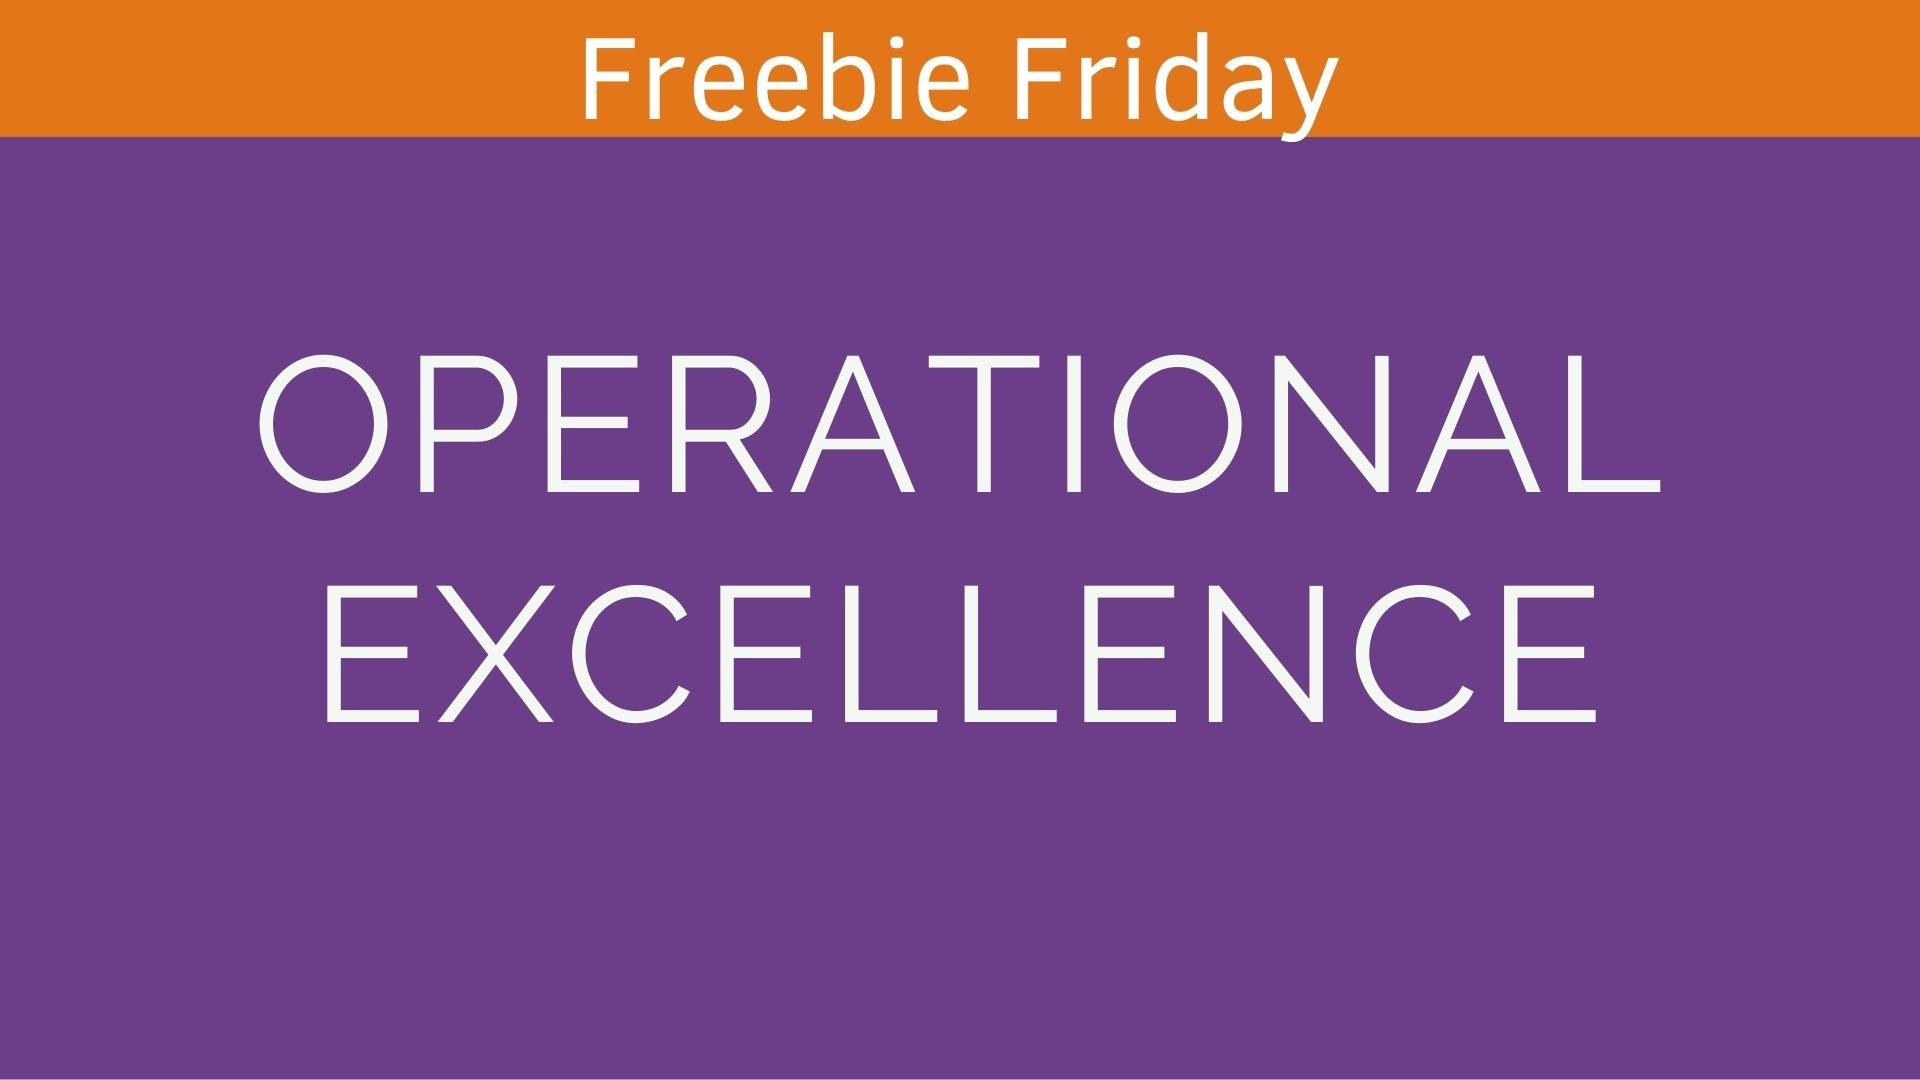 Operational excellence image - Freebie Friday